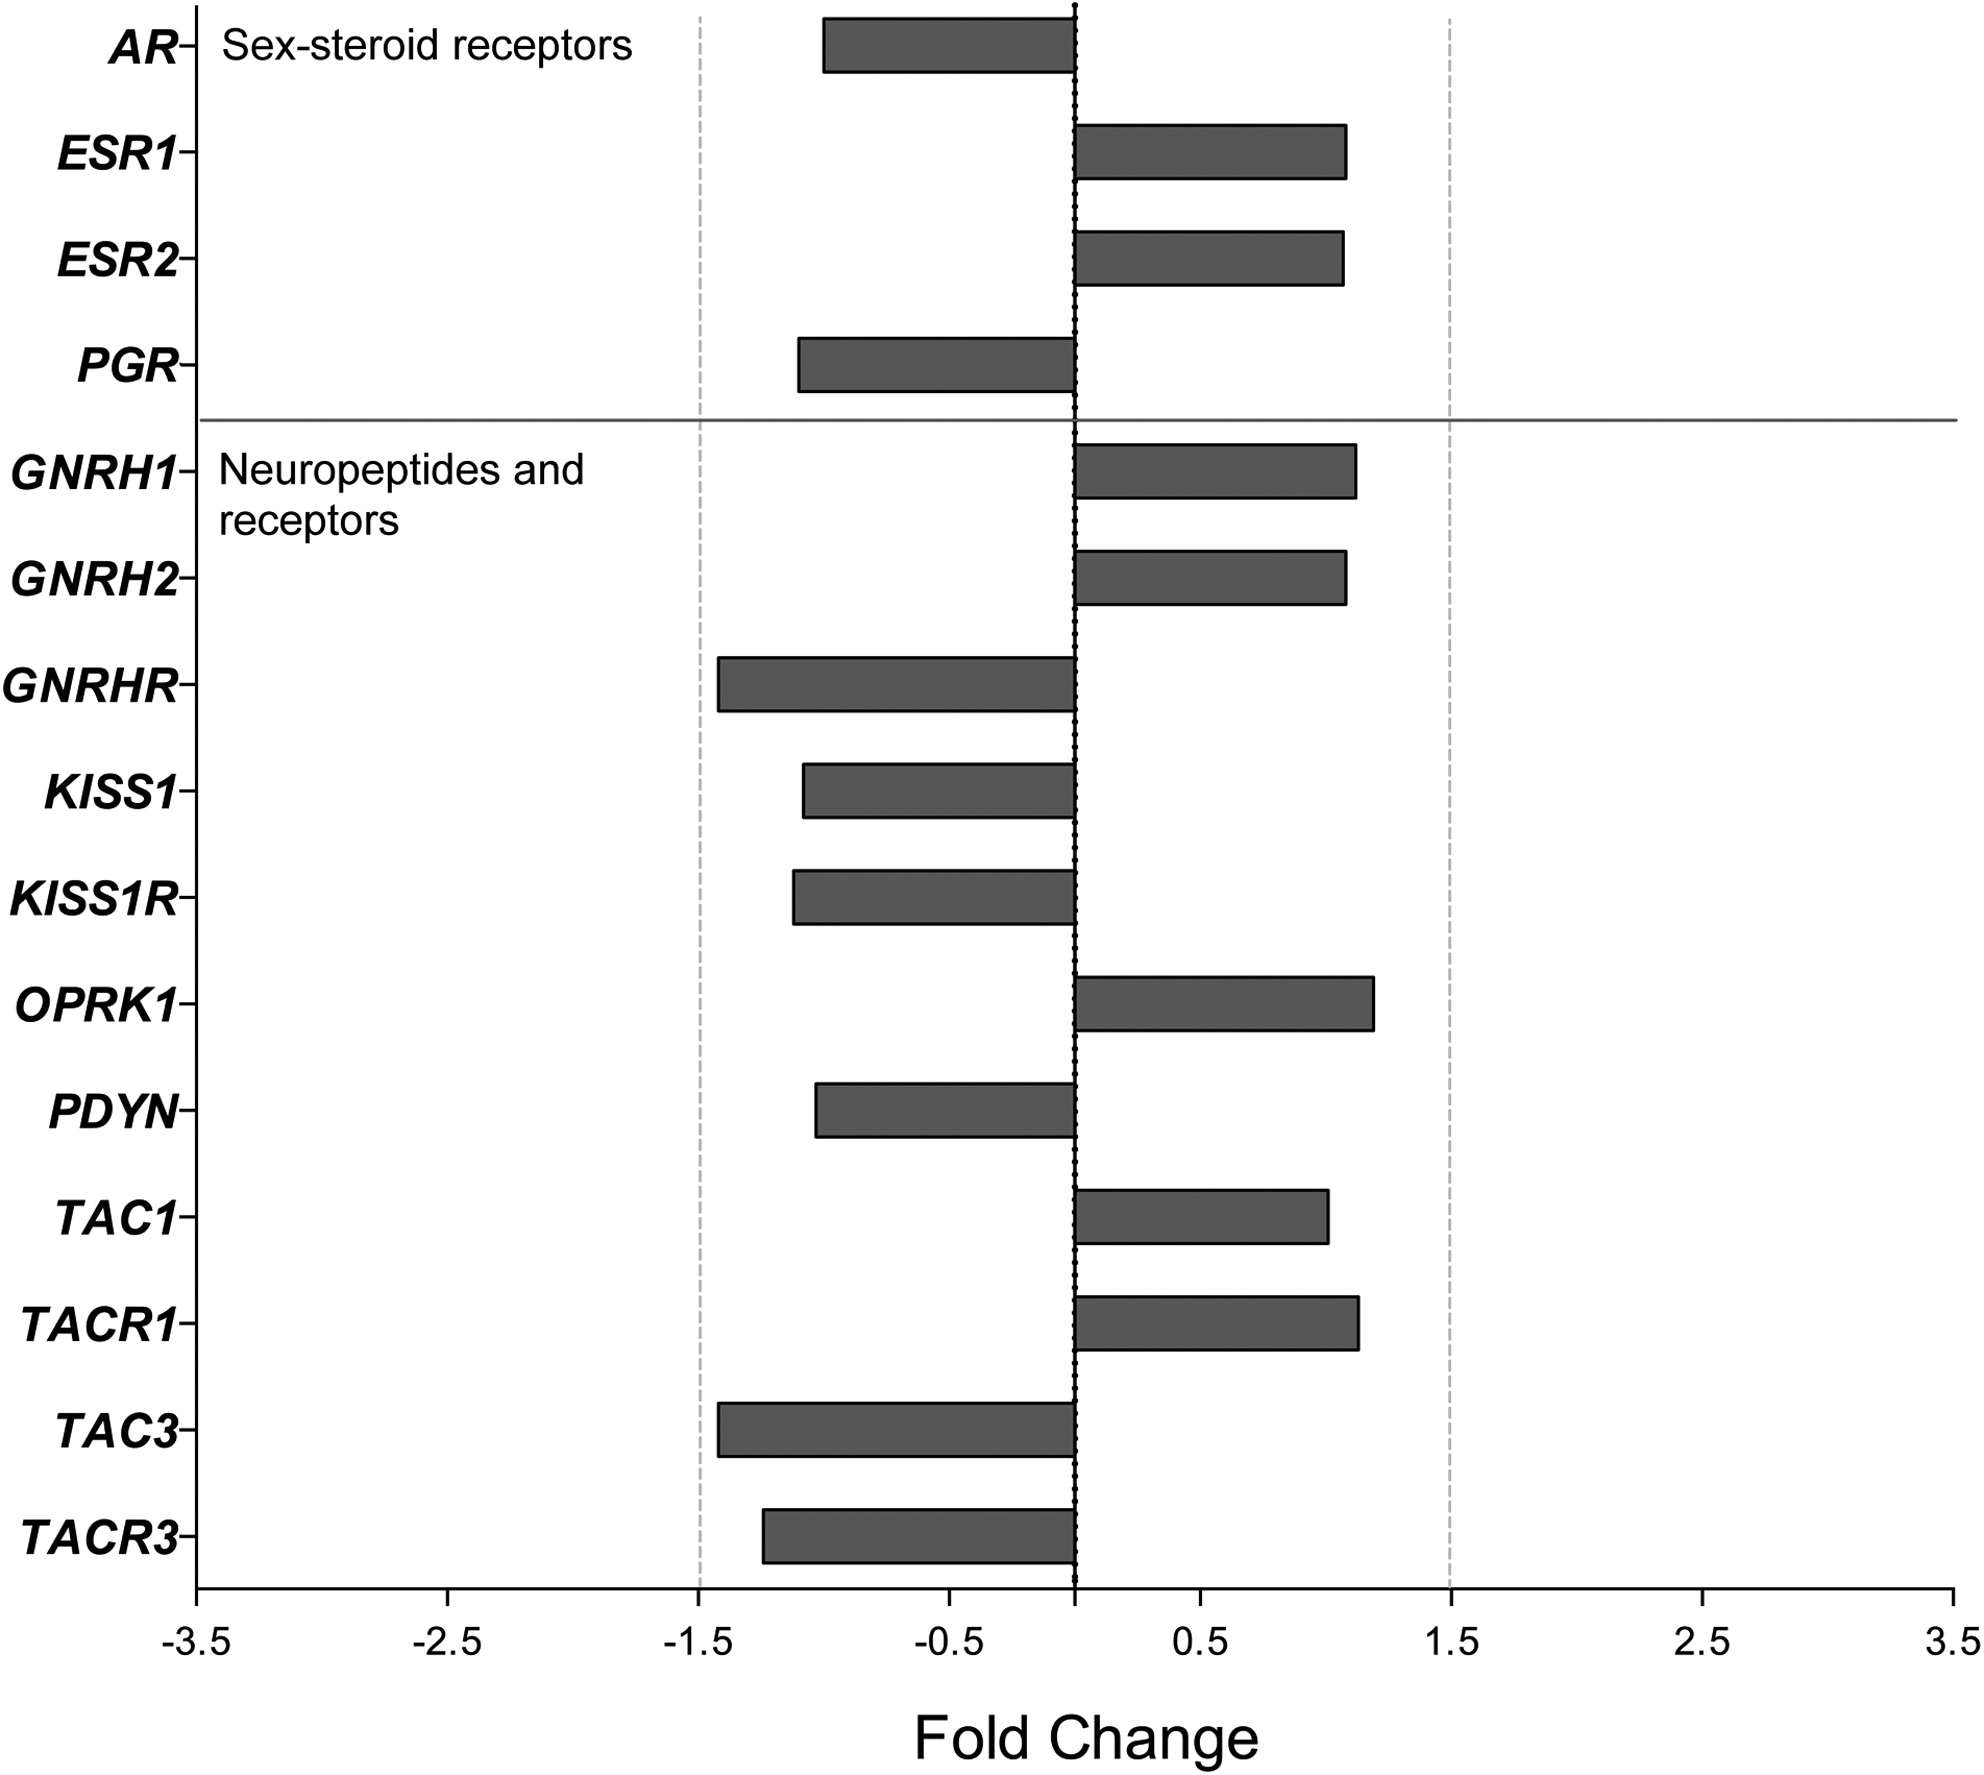 Age-associated gene expression changes in the arcuate nucleus of